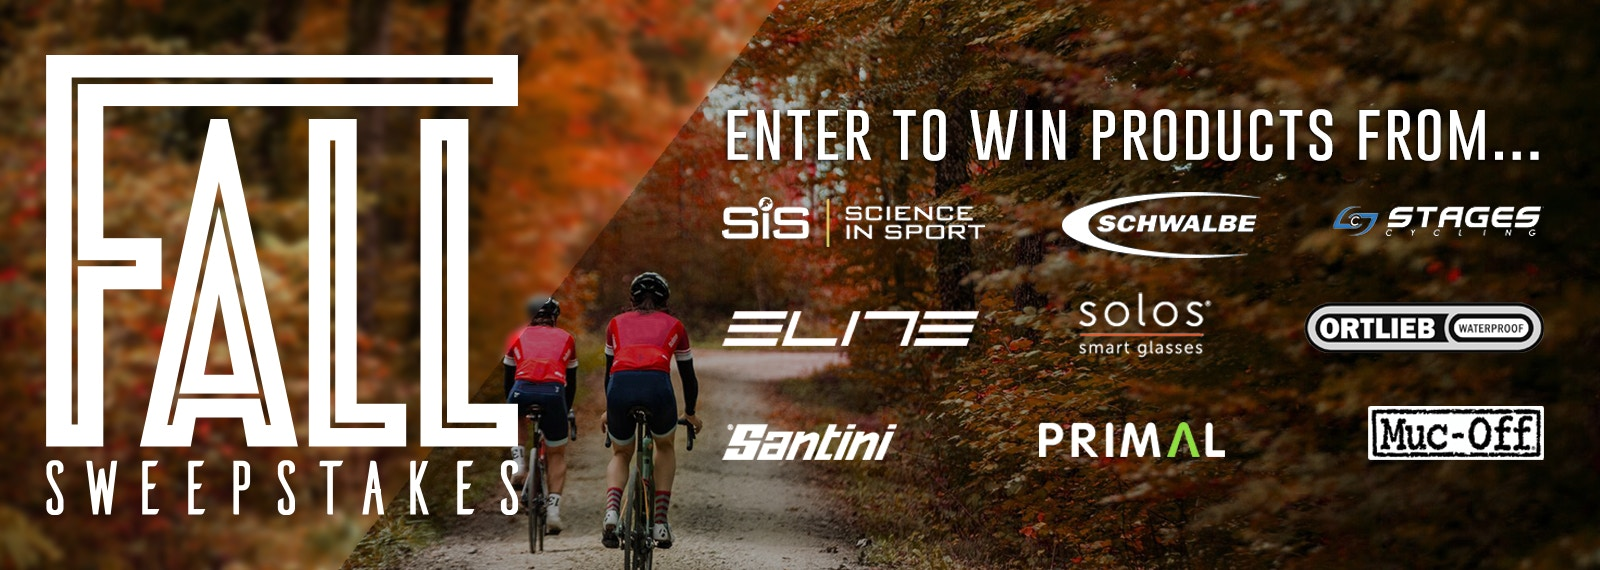 BIKEEXCHANGE FALL SWEEPSTAKES!! Enter to win any of our daily prizes!